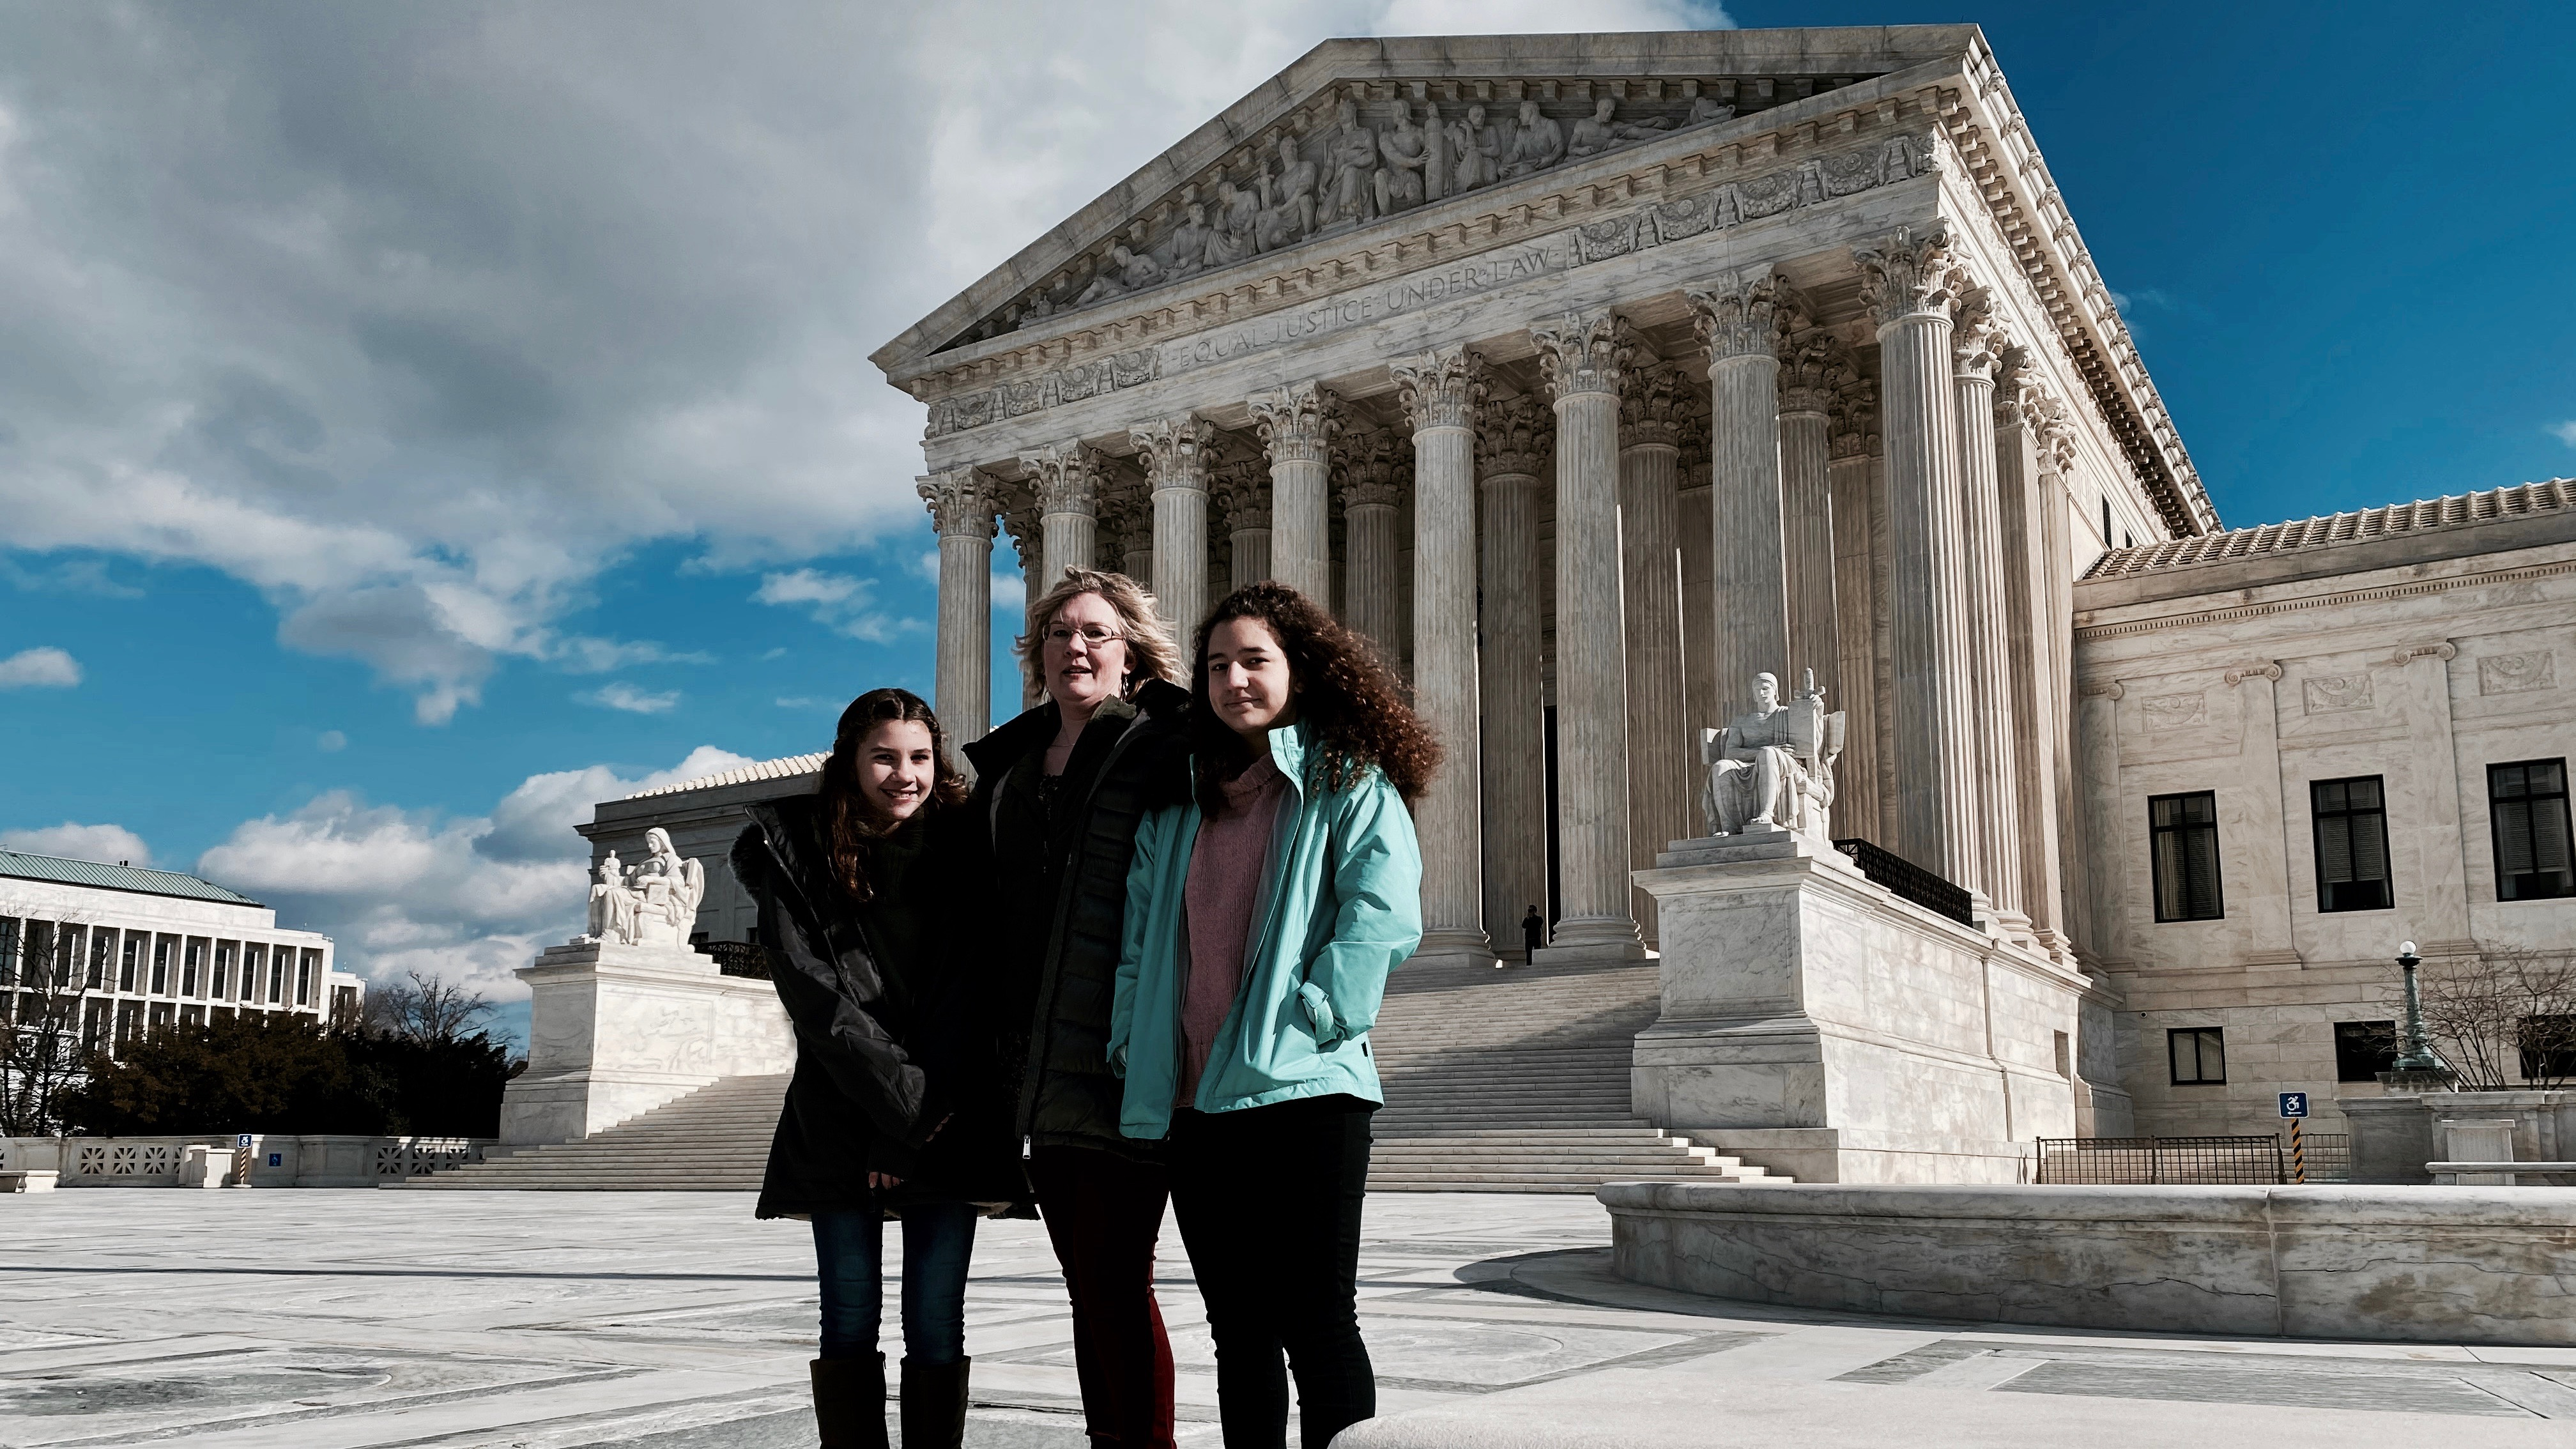 Kendra Espinoza and her daughters in front of the US Supreme Court.